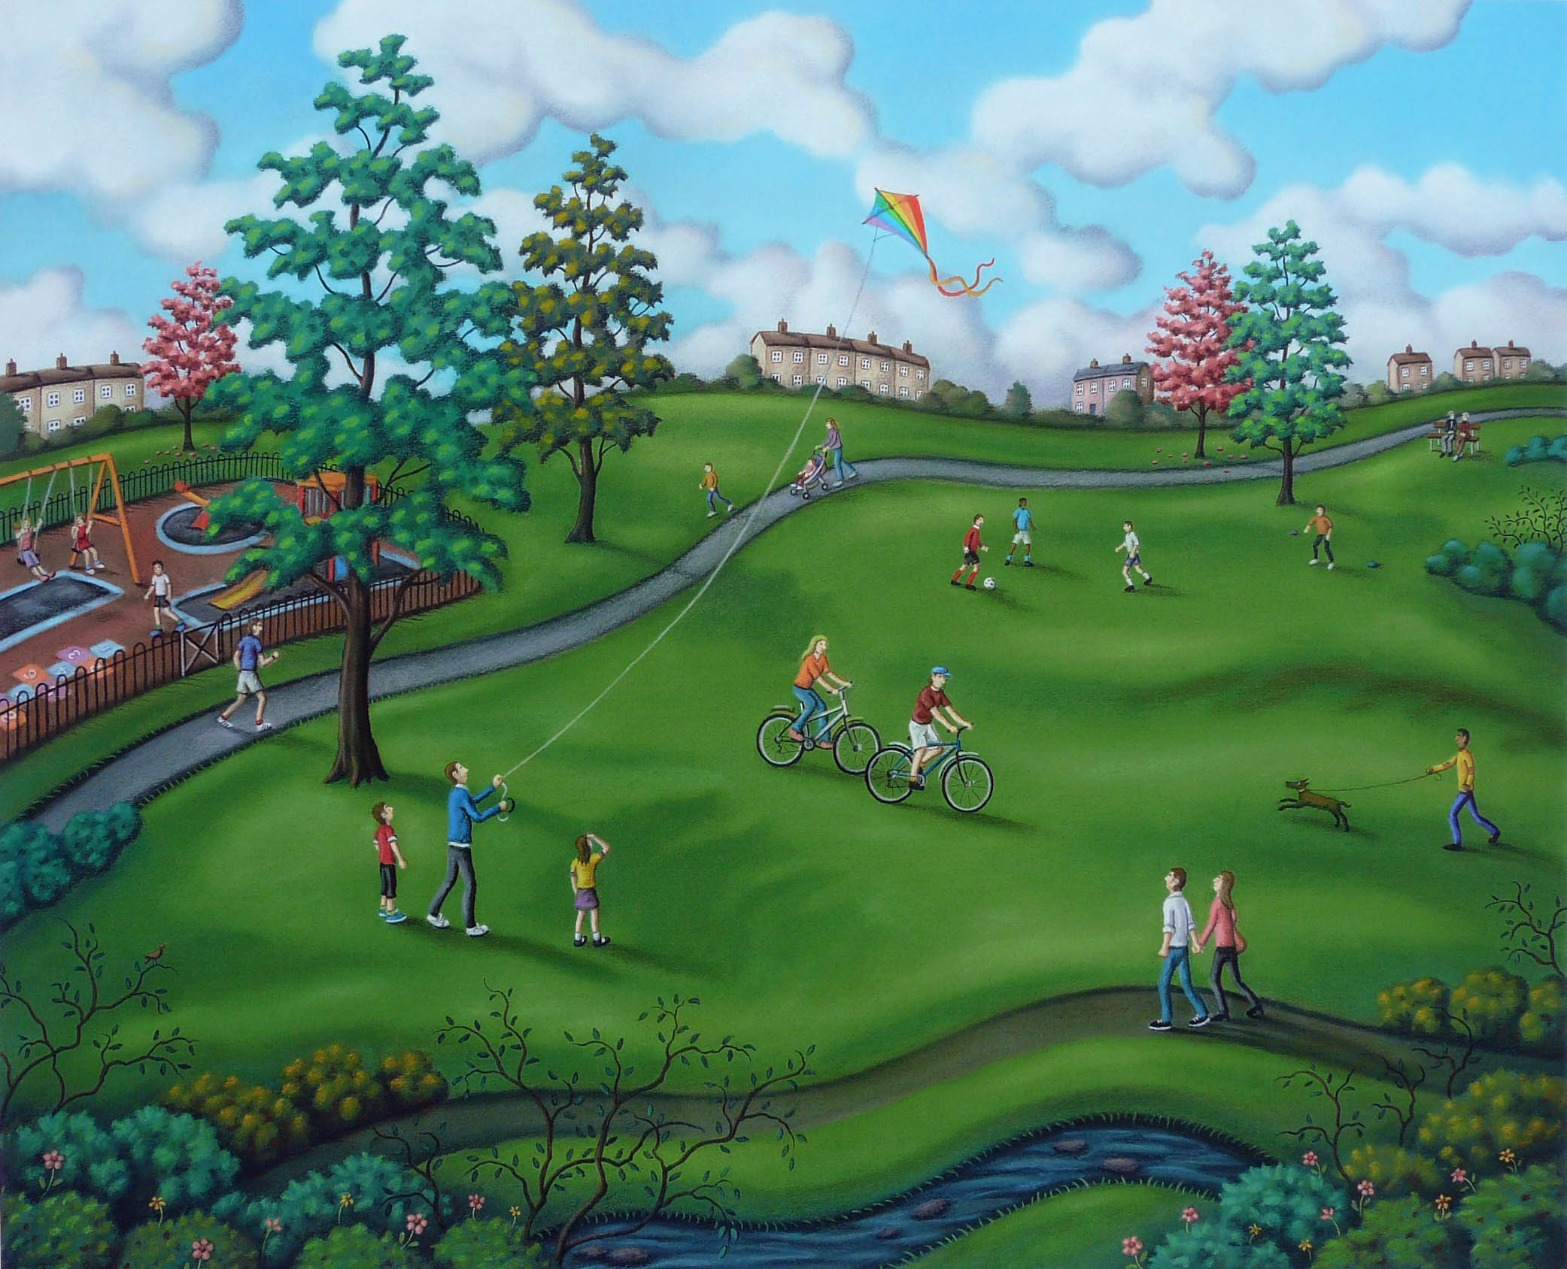 Parklife by Paul Horton, Family | Landscape | Children | Animals | Football | Dog